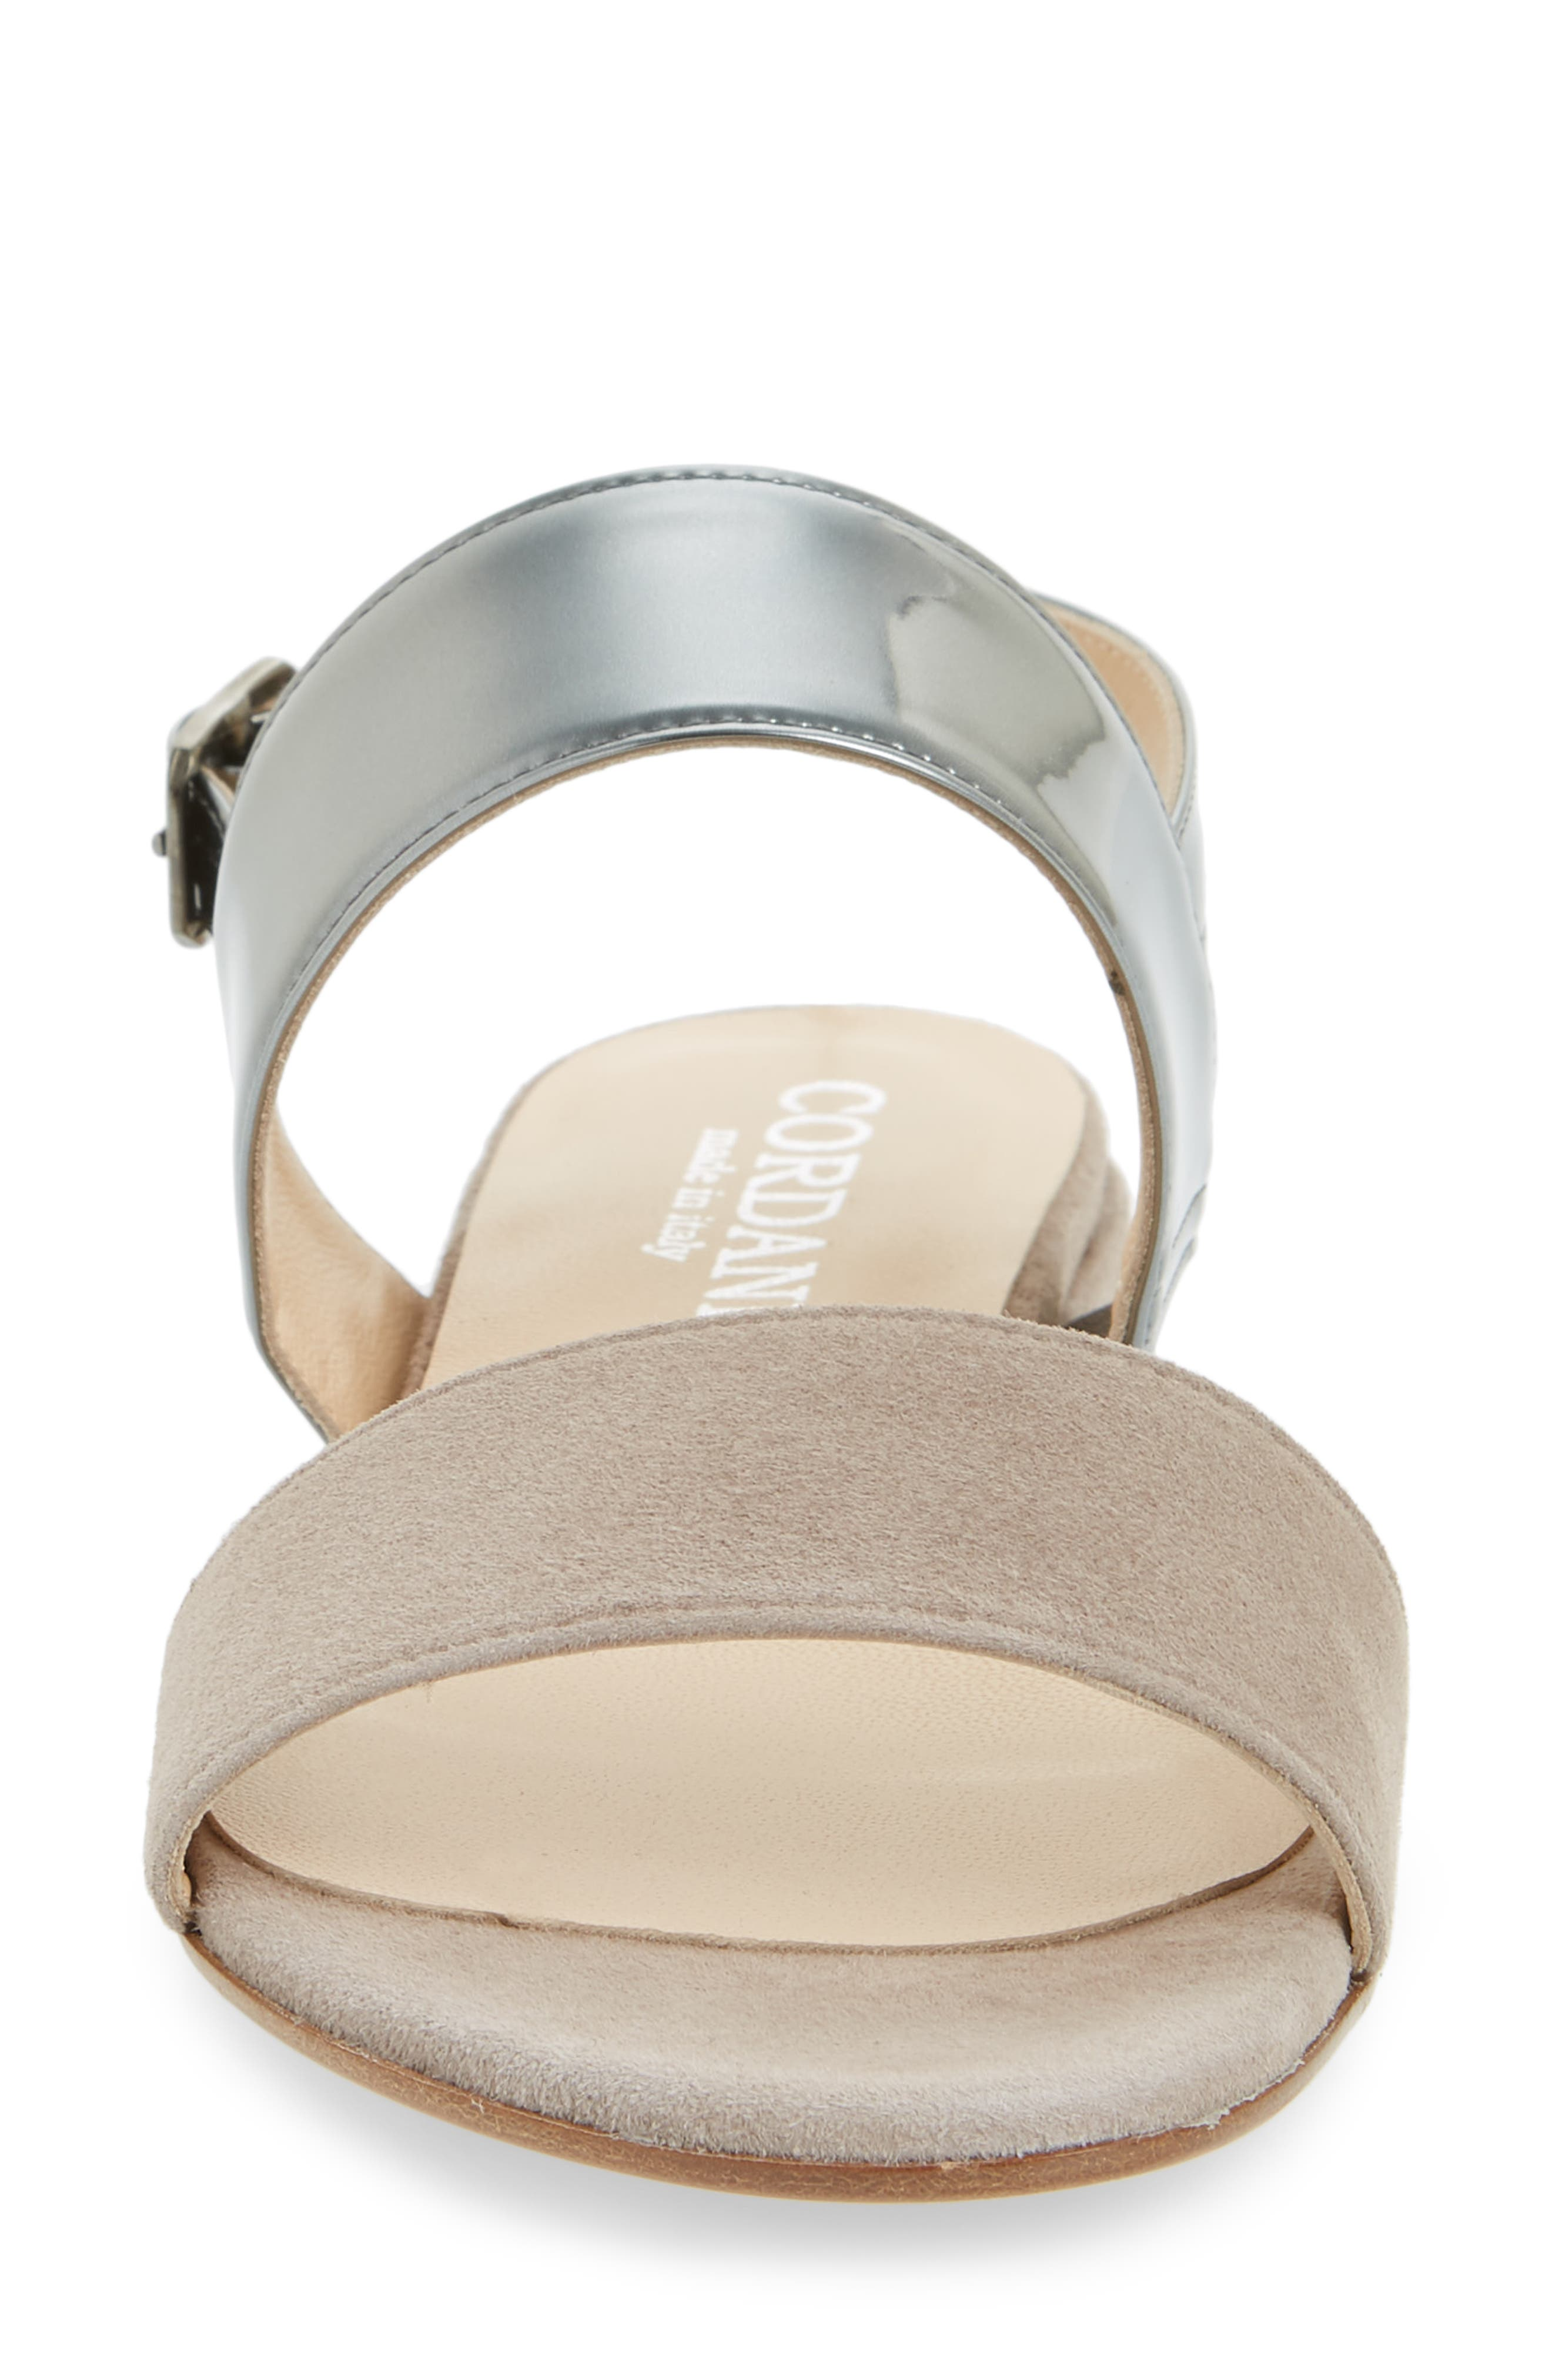 Prudence Sandal,                             Alternate thumbnail 4, color,                             GREY SUEDE